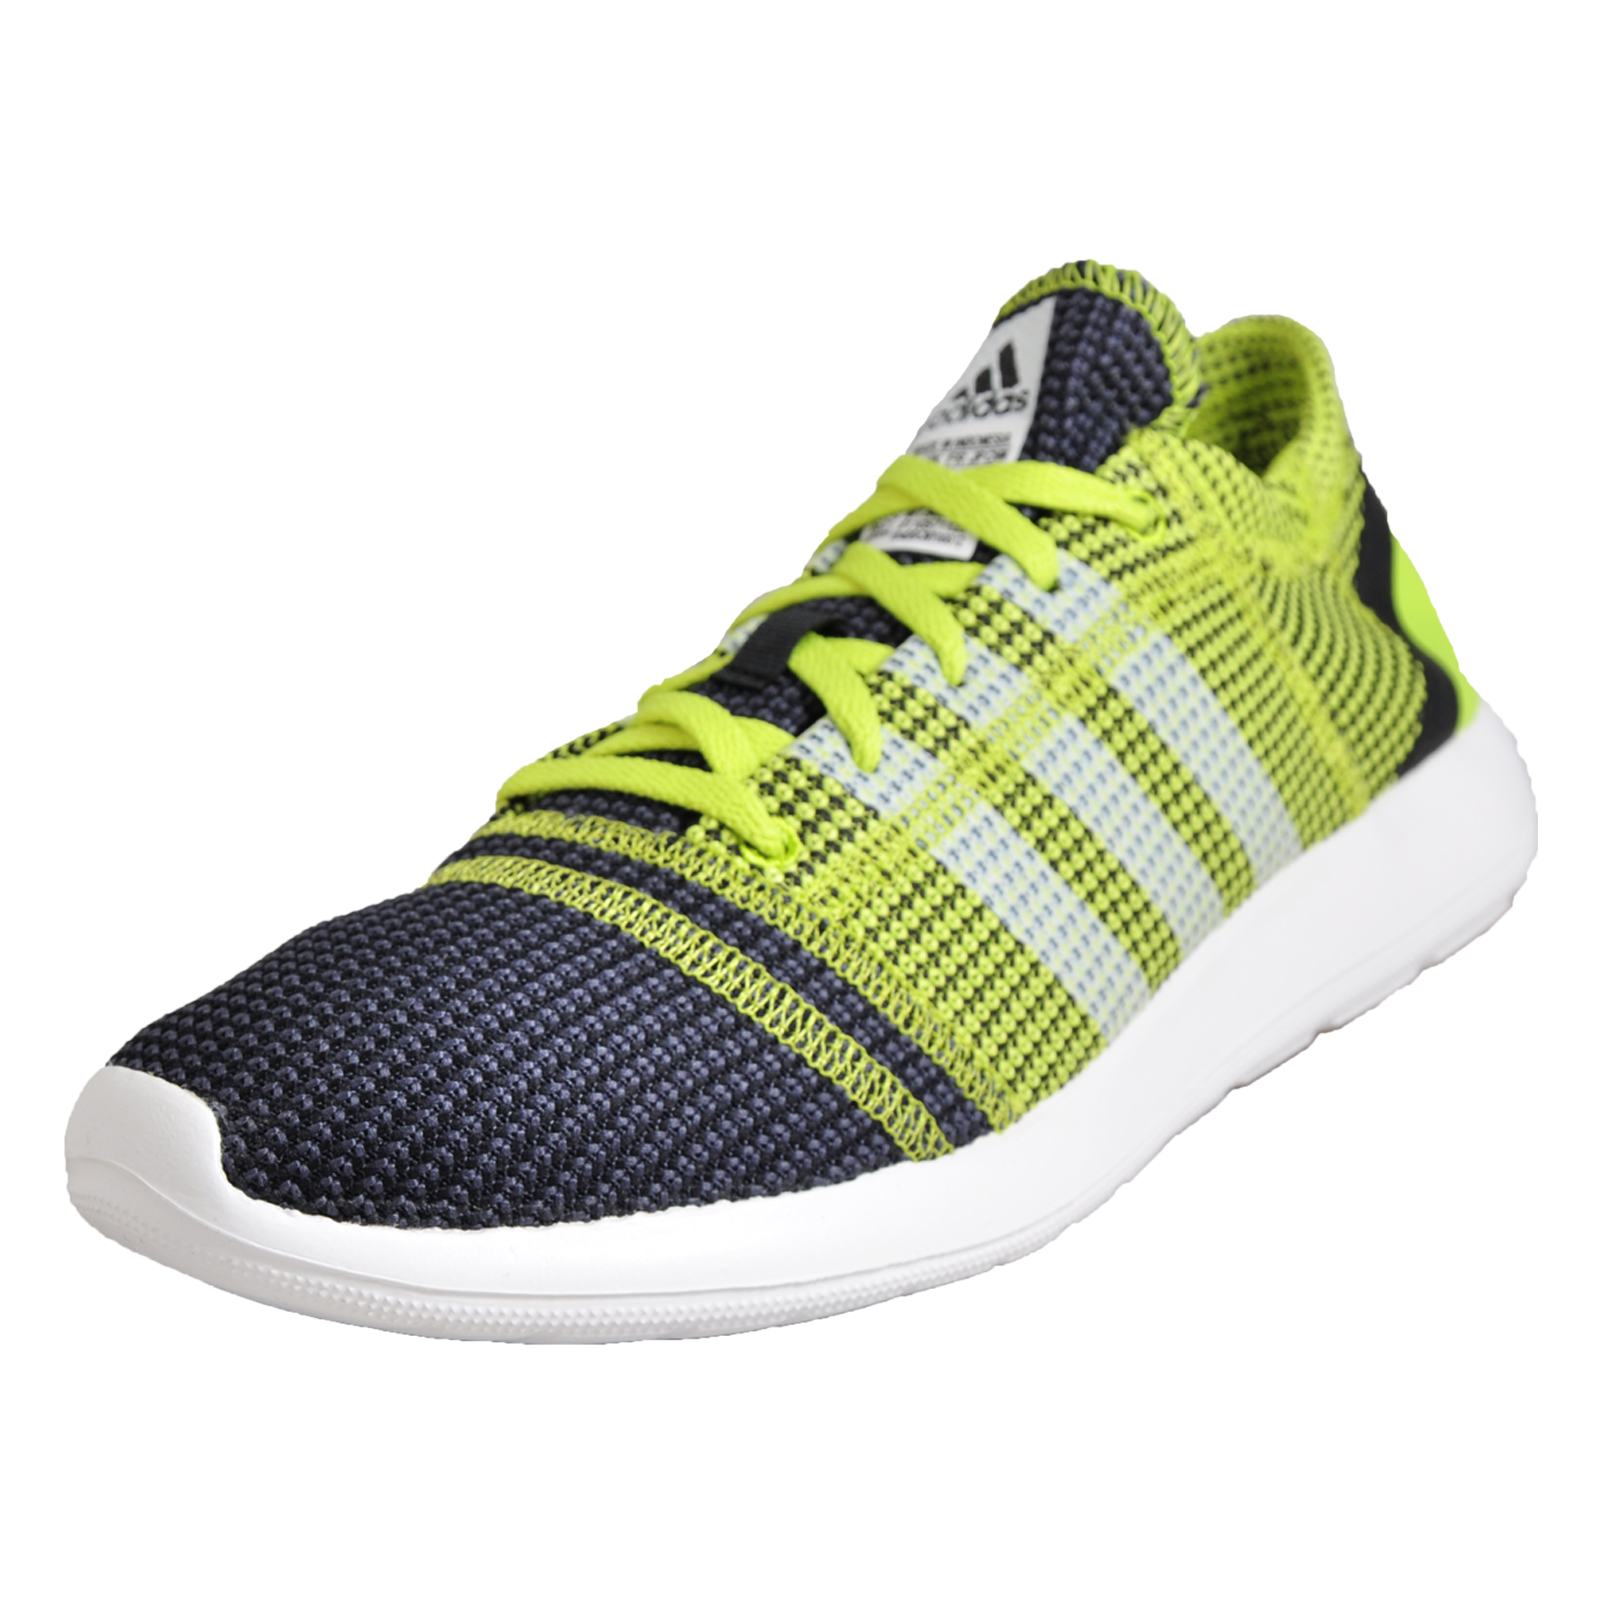 reputable site 4e845 38c8a Adidas Element Refine Tricot Men s Premium Running Shoes Fitness Gym  Trainers